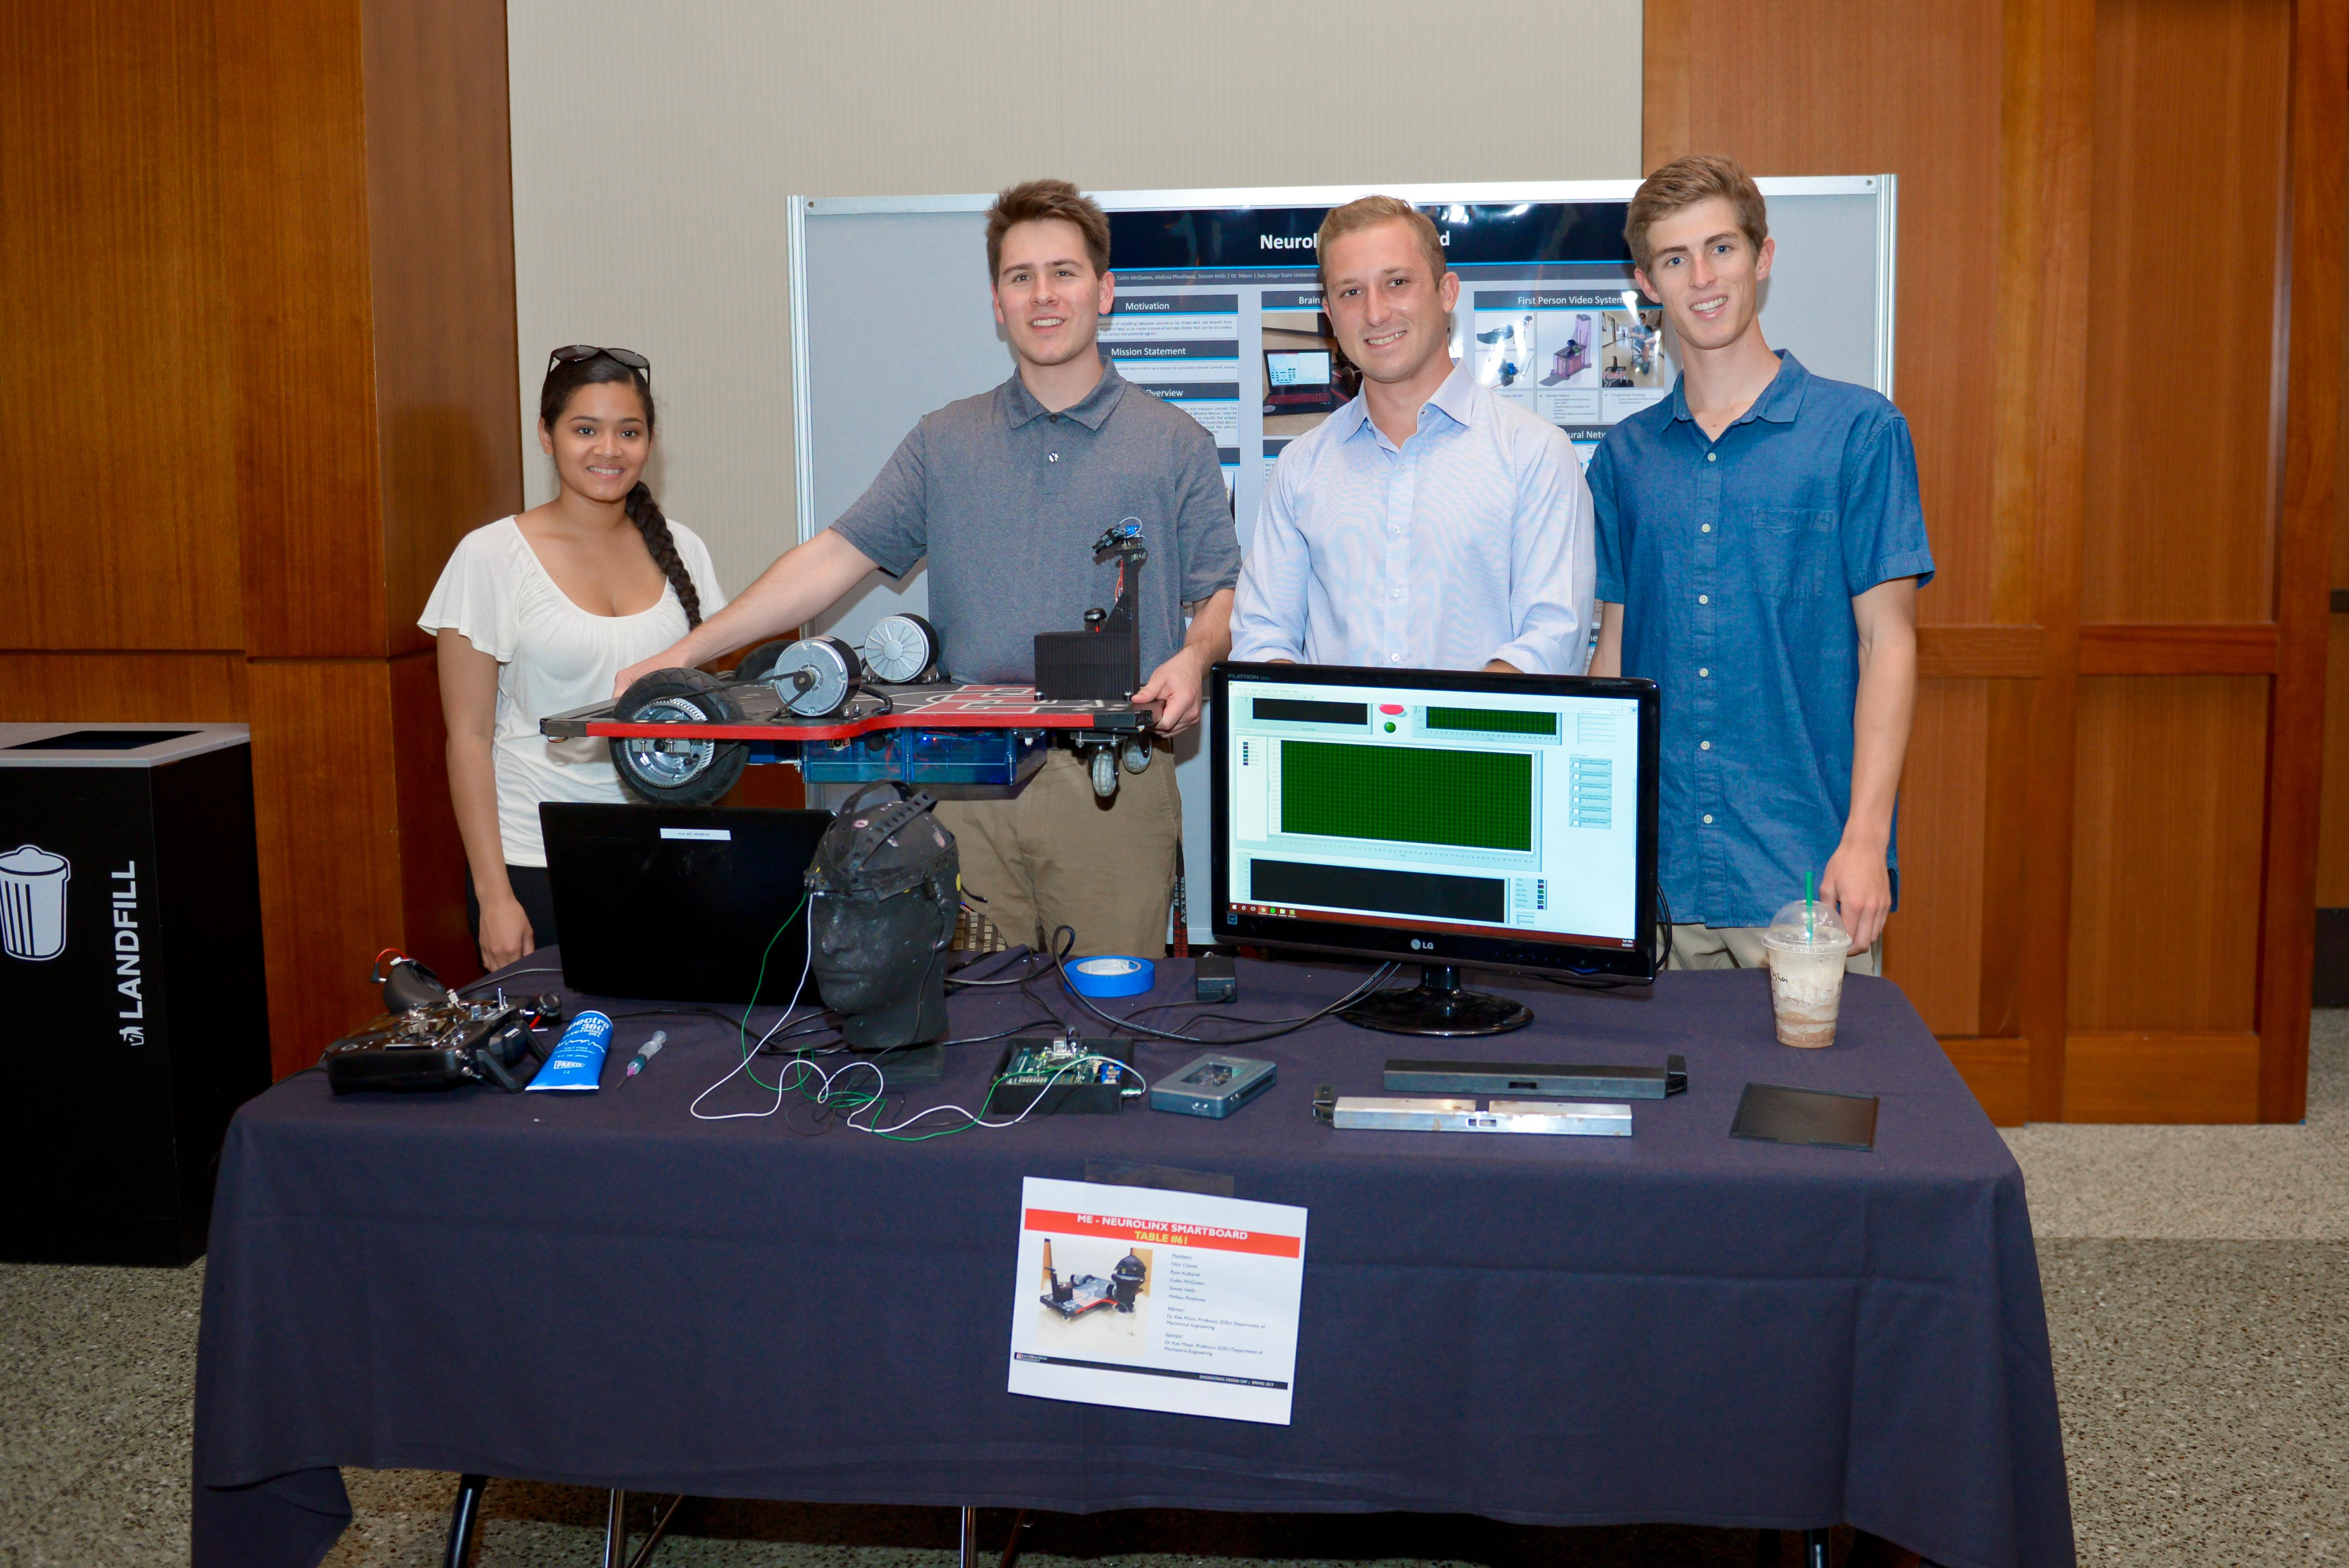 Four students displaying their computer and project